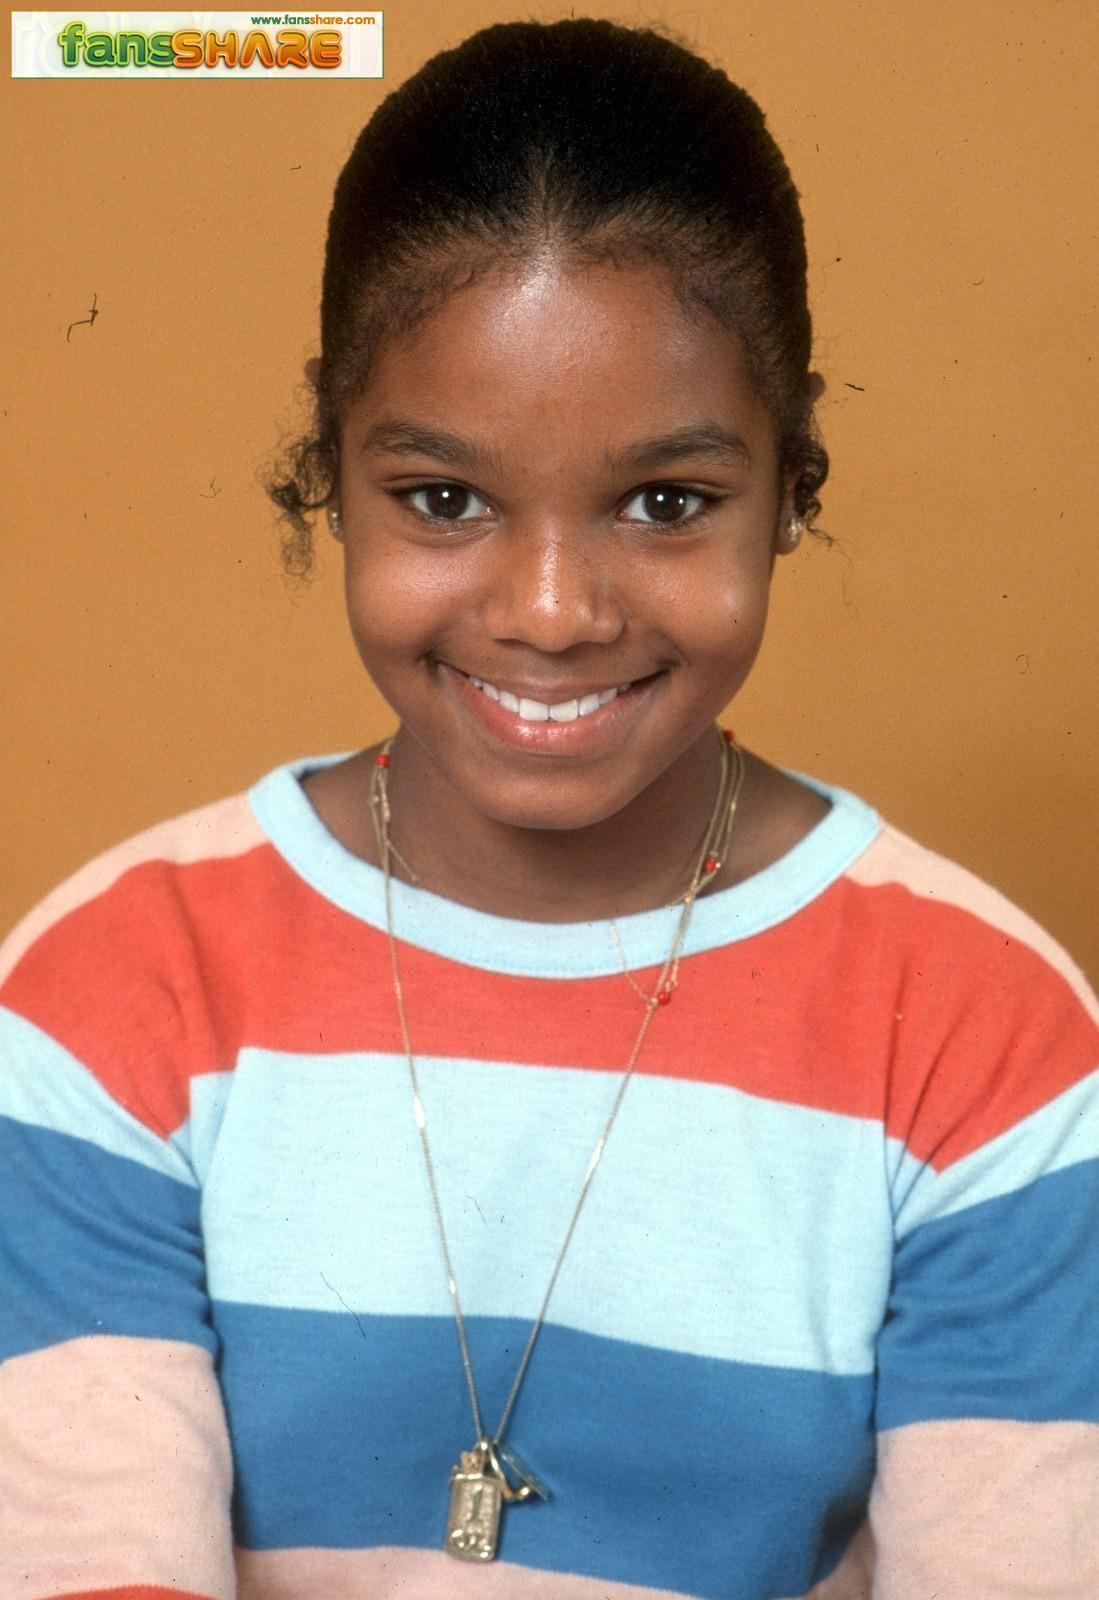 934_janet-jackson-stars-childhood-pictures-young-1457862149